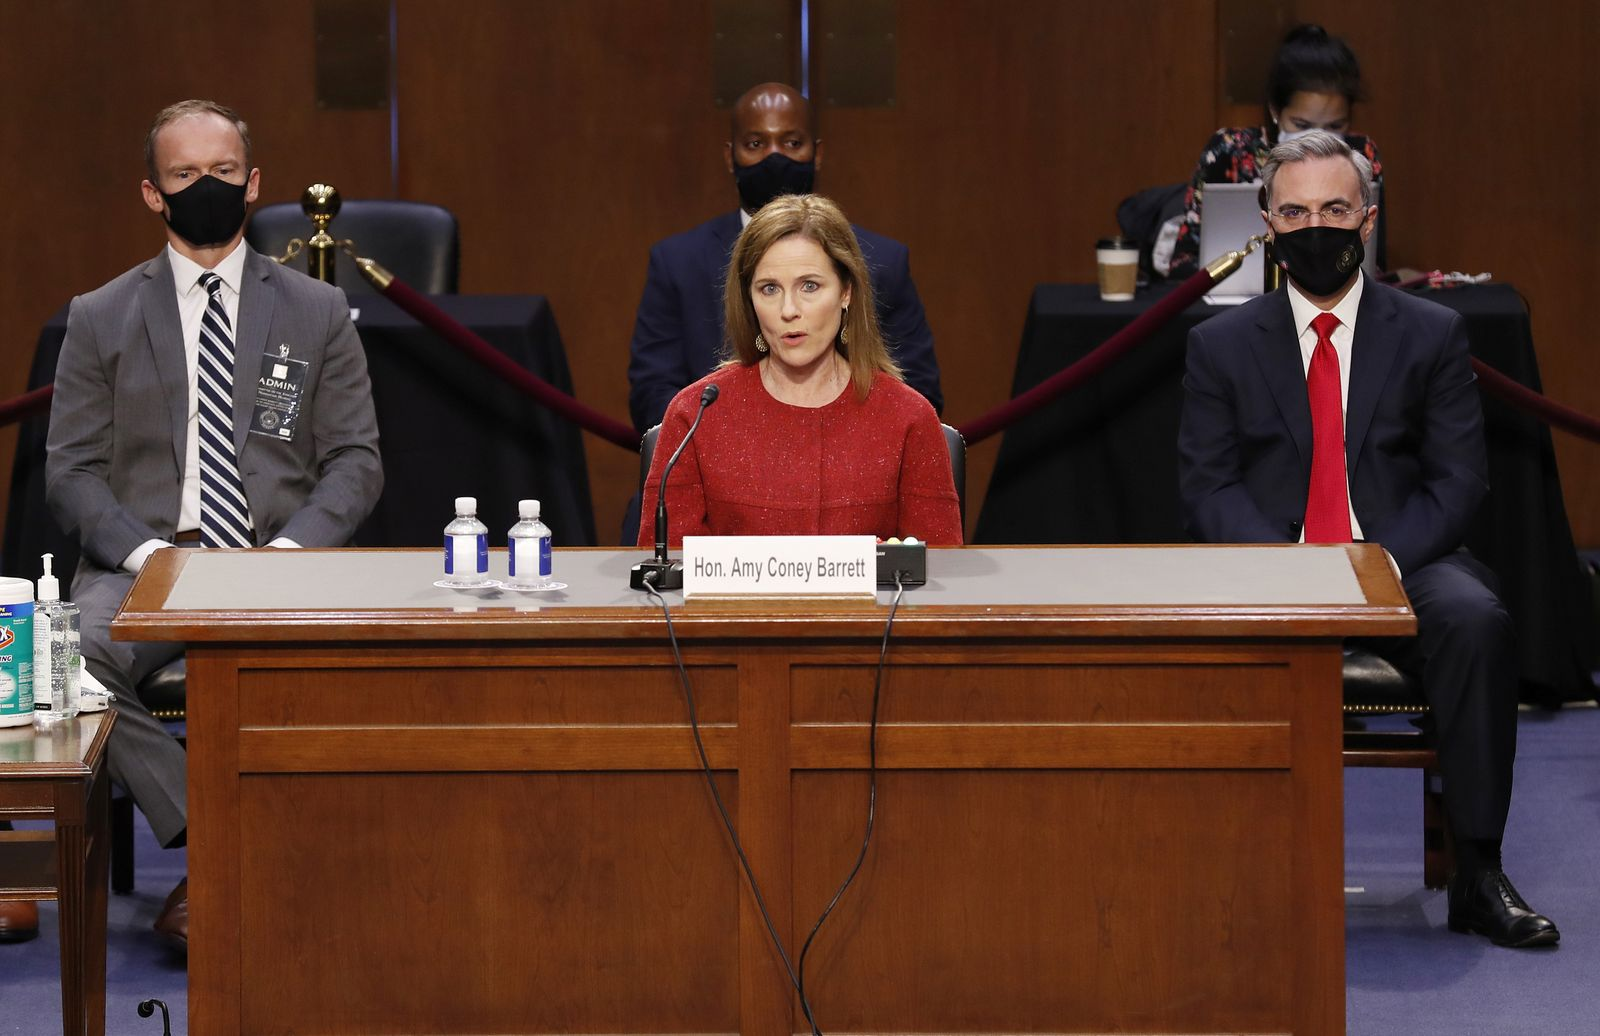 U.S. Senate holds confirmation hearing for Barrett to be Supreme Court justice in Washington